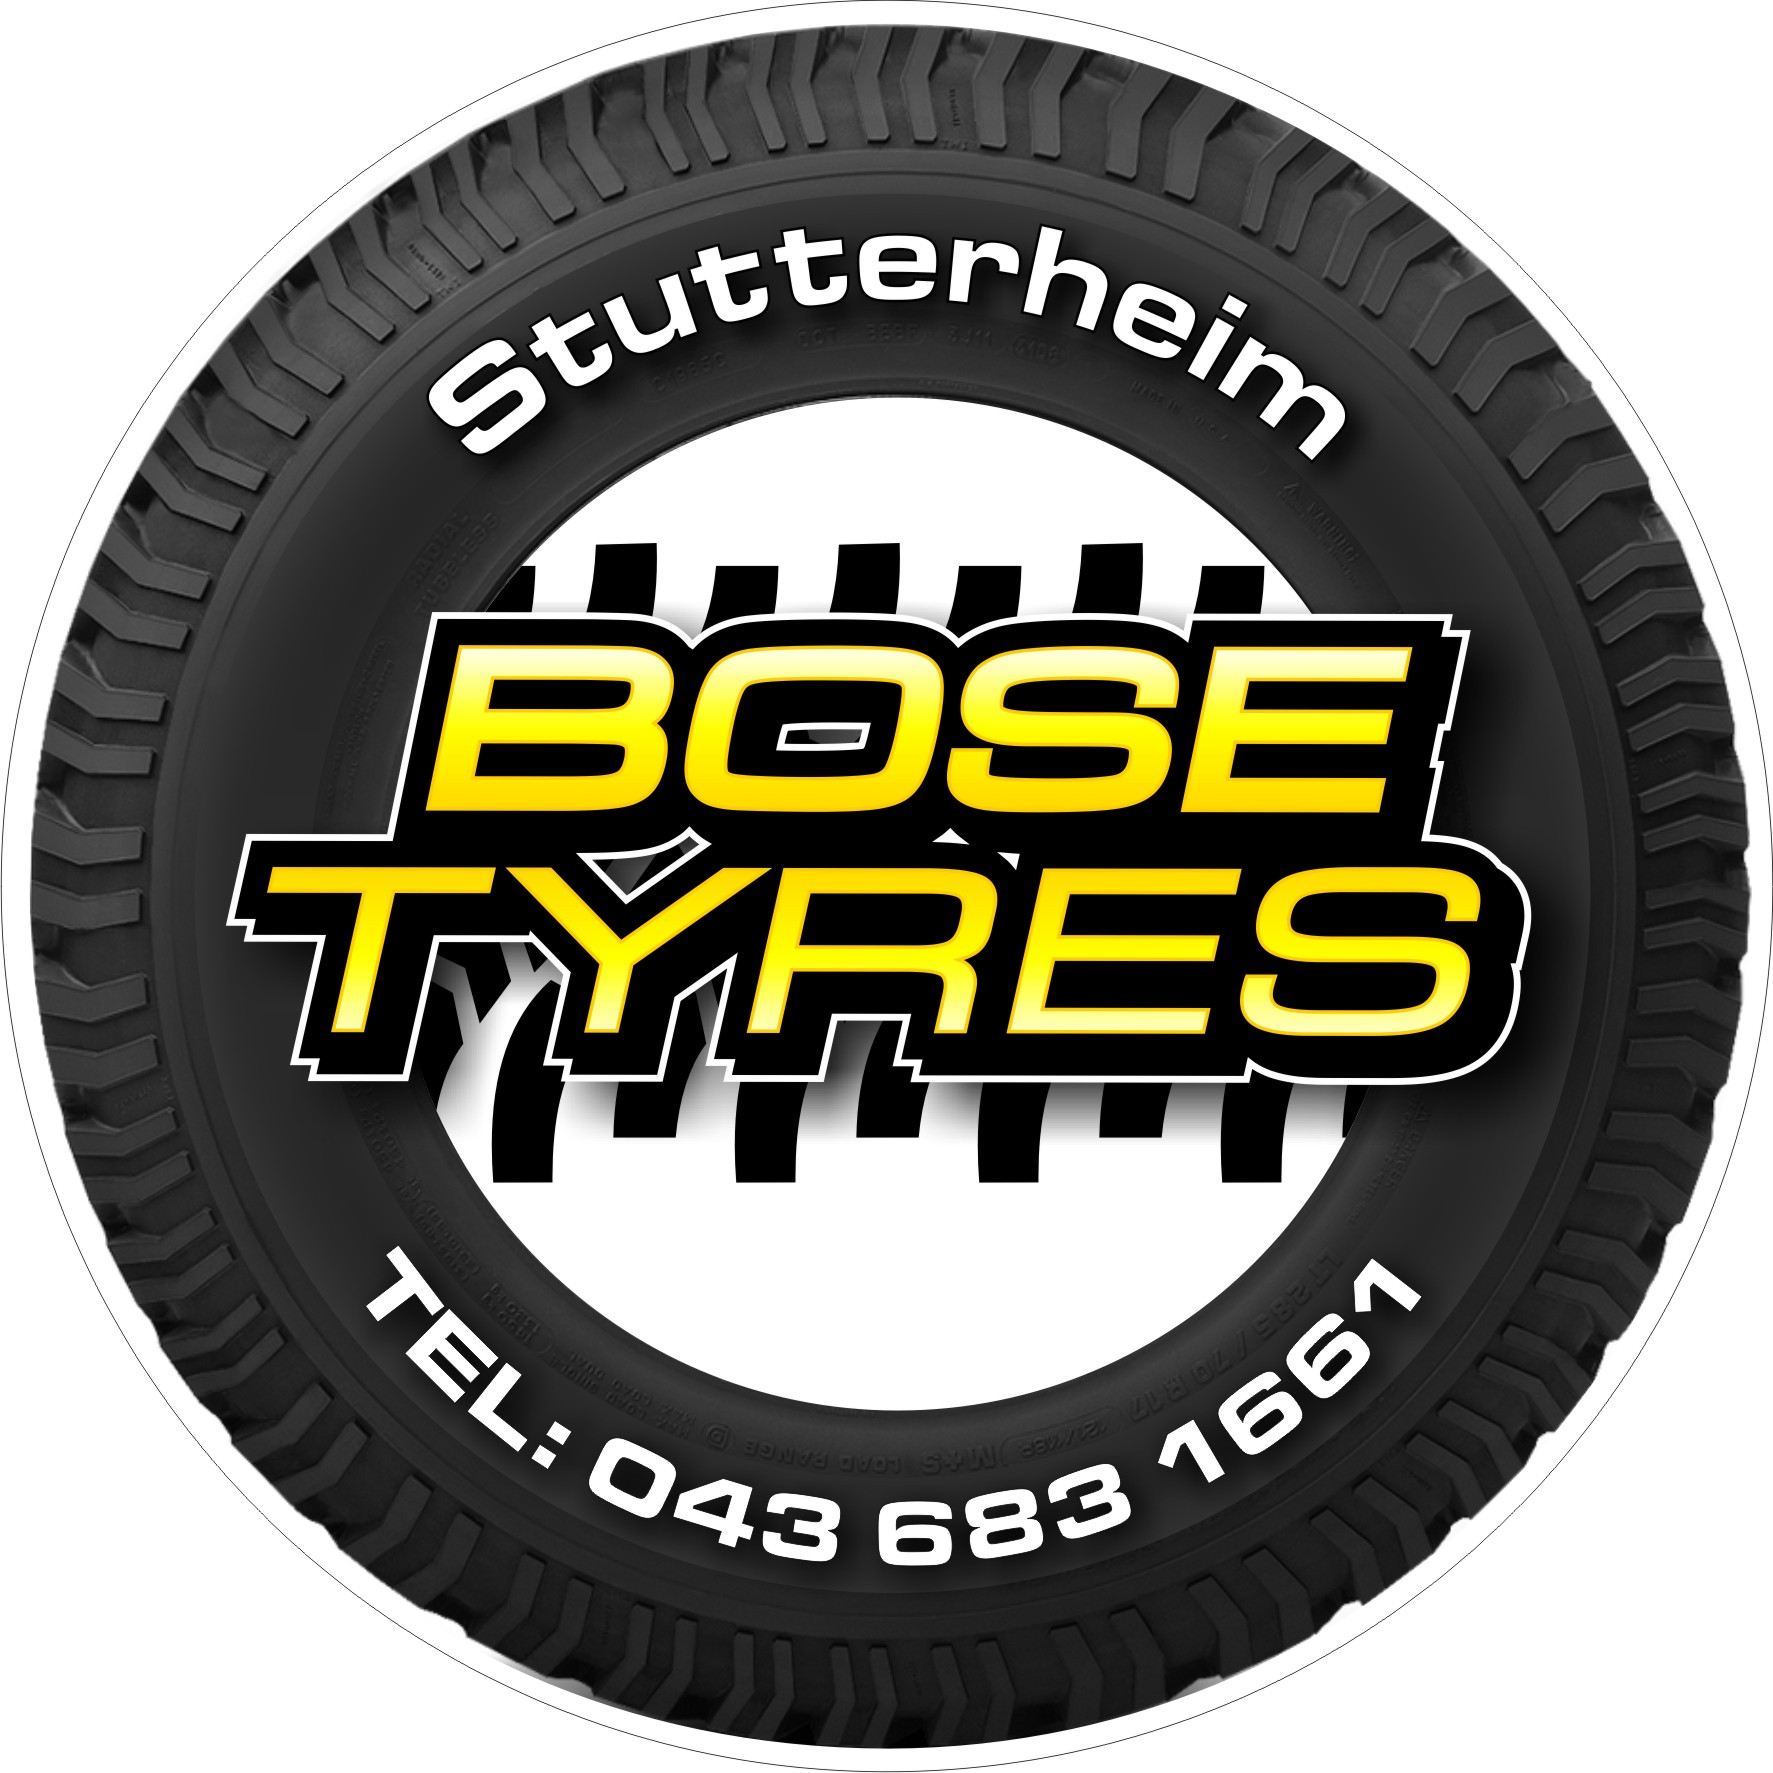 BOSE TYRES LICENCE DISK HOLDER ARTWORK